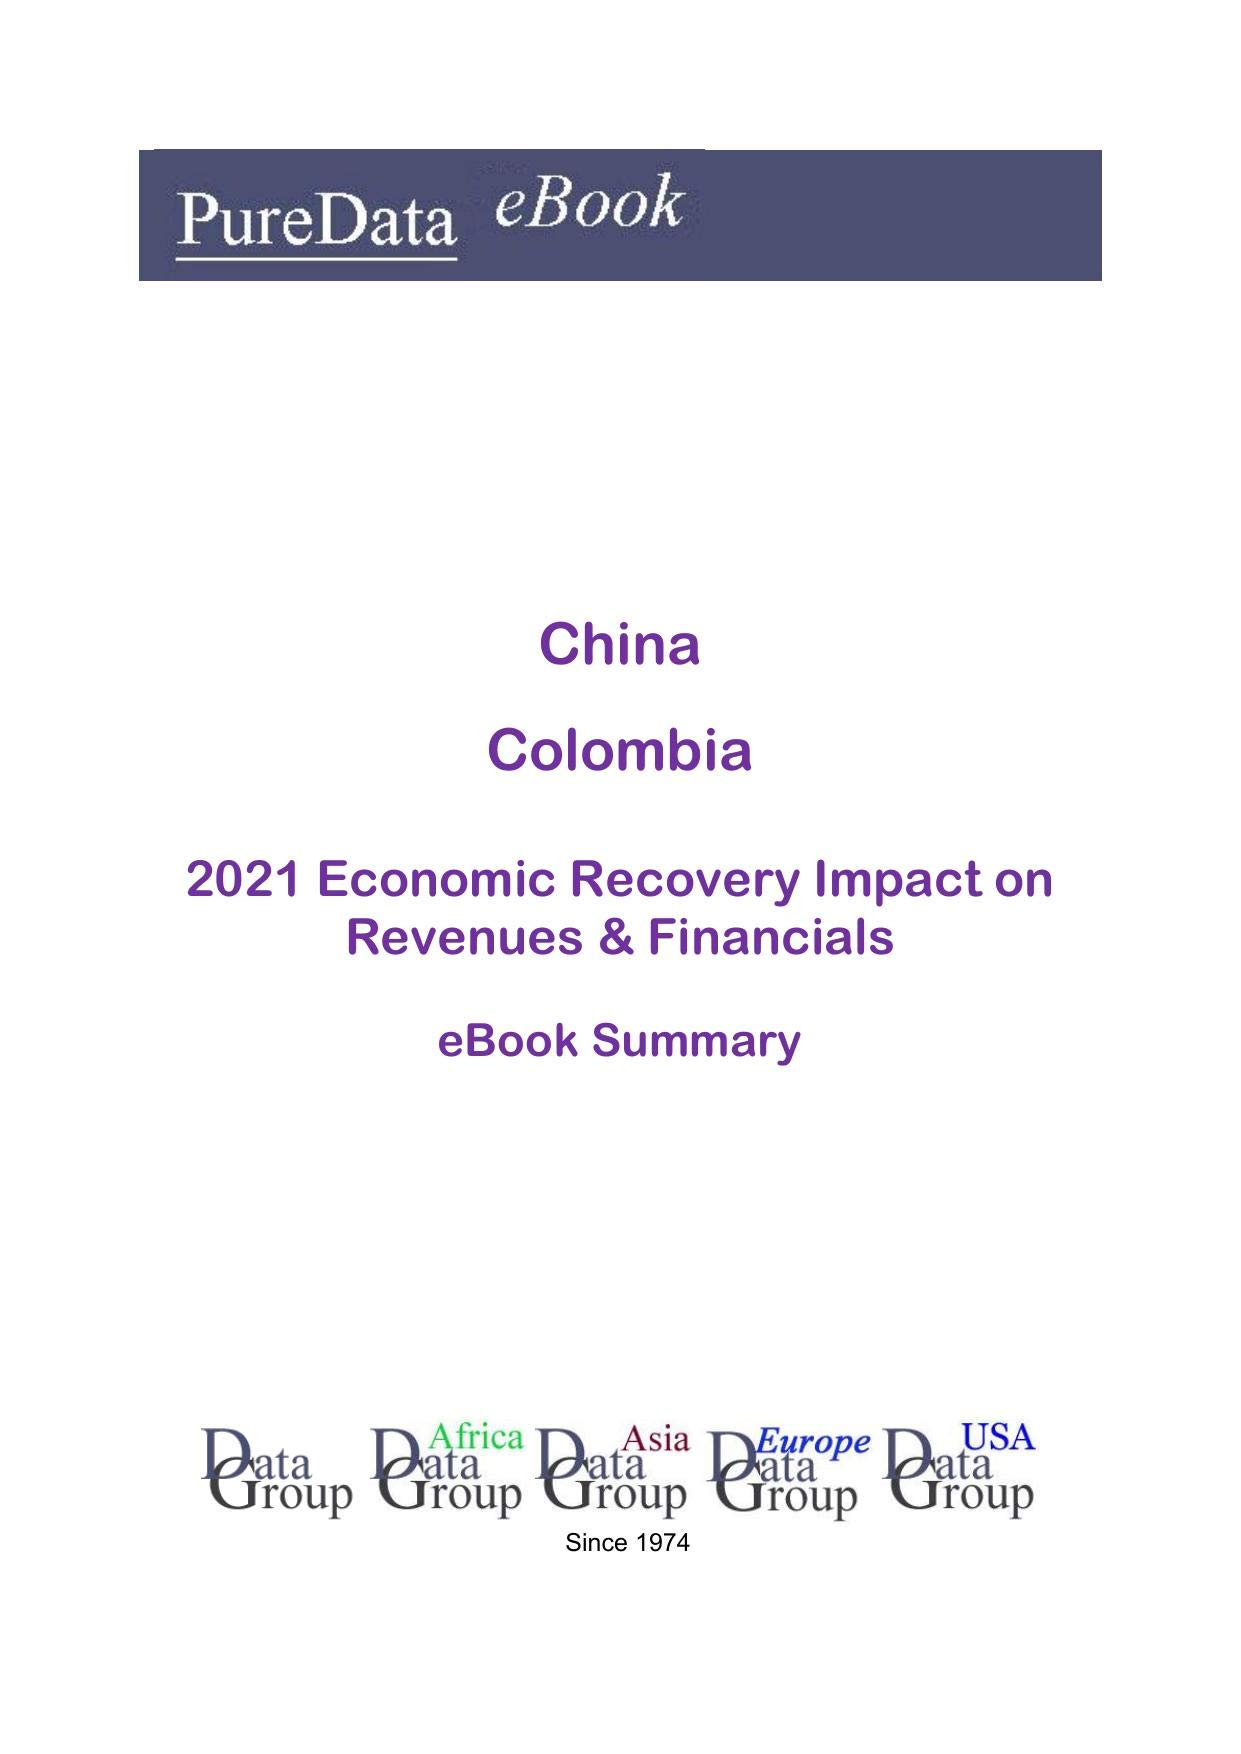 China Colombia Summary: 2021 Economic Recovery Impact on Revenues & Financials